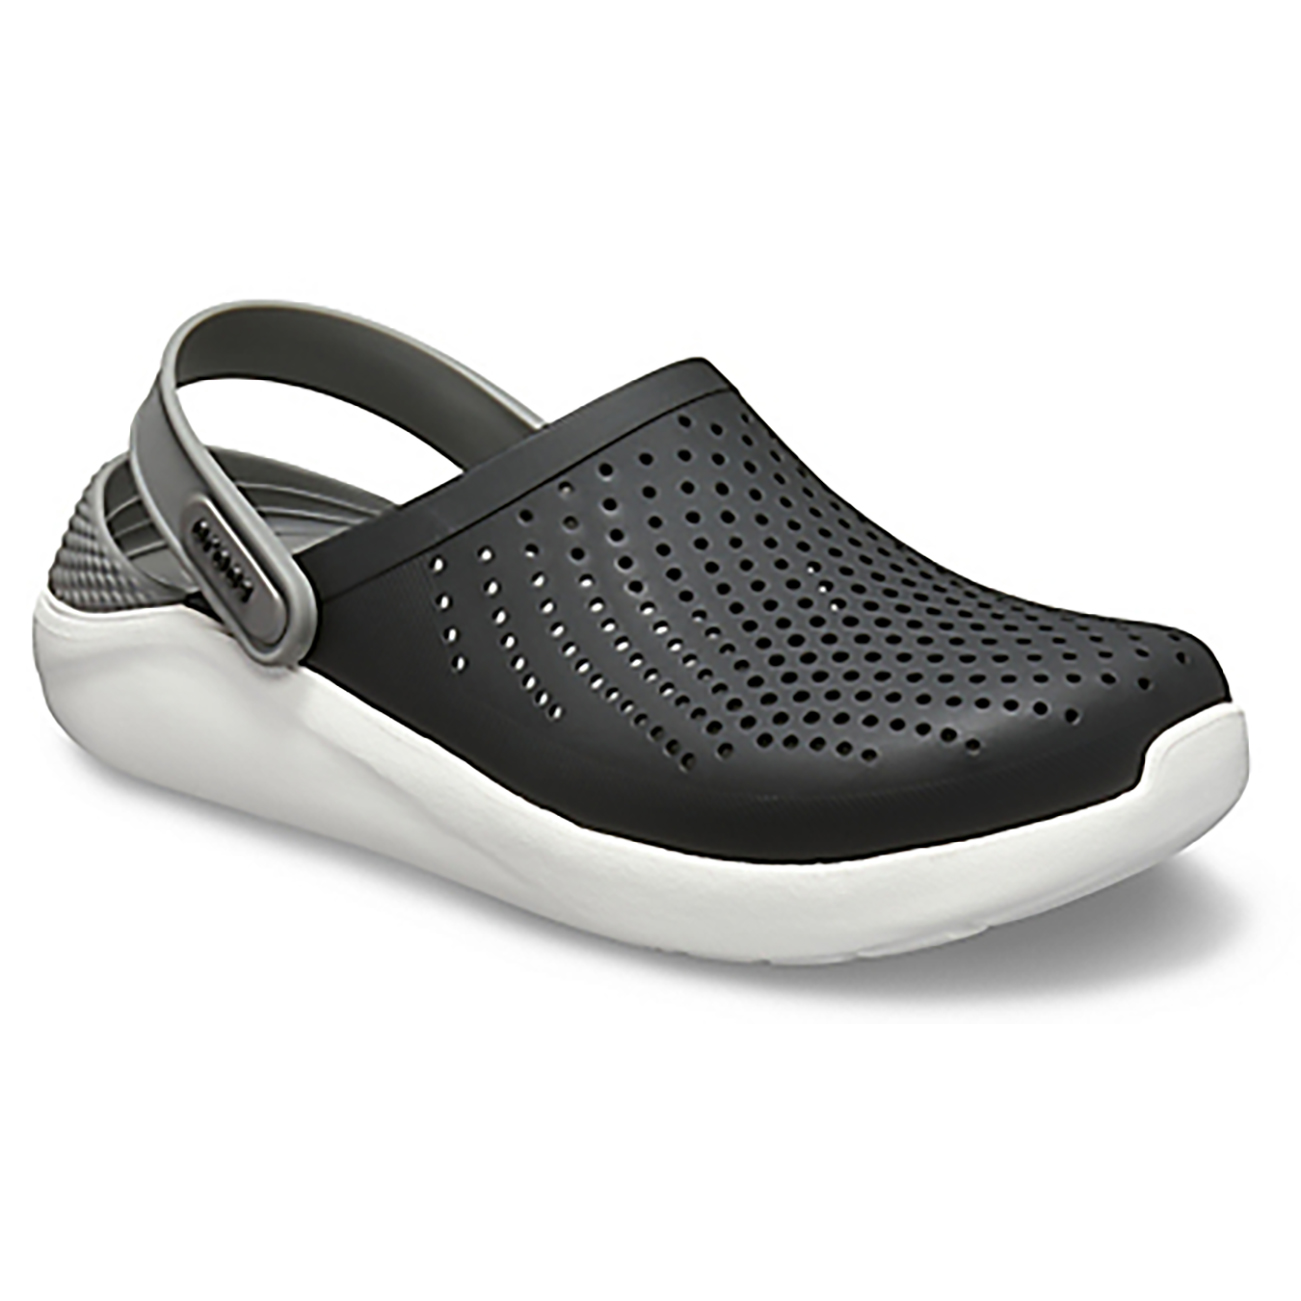 Unisex Adults Crocs LiteRide Clog